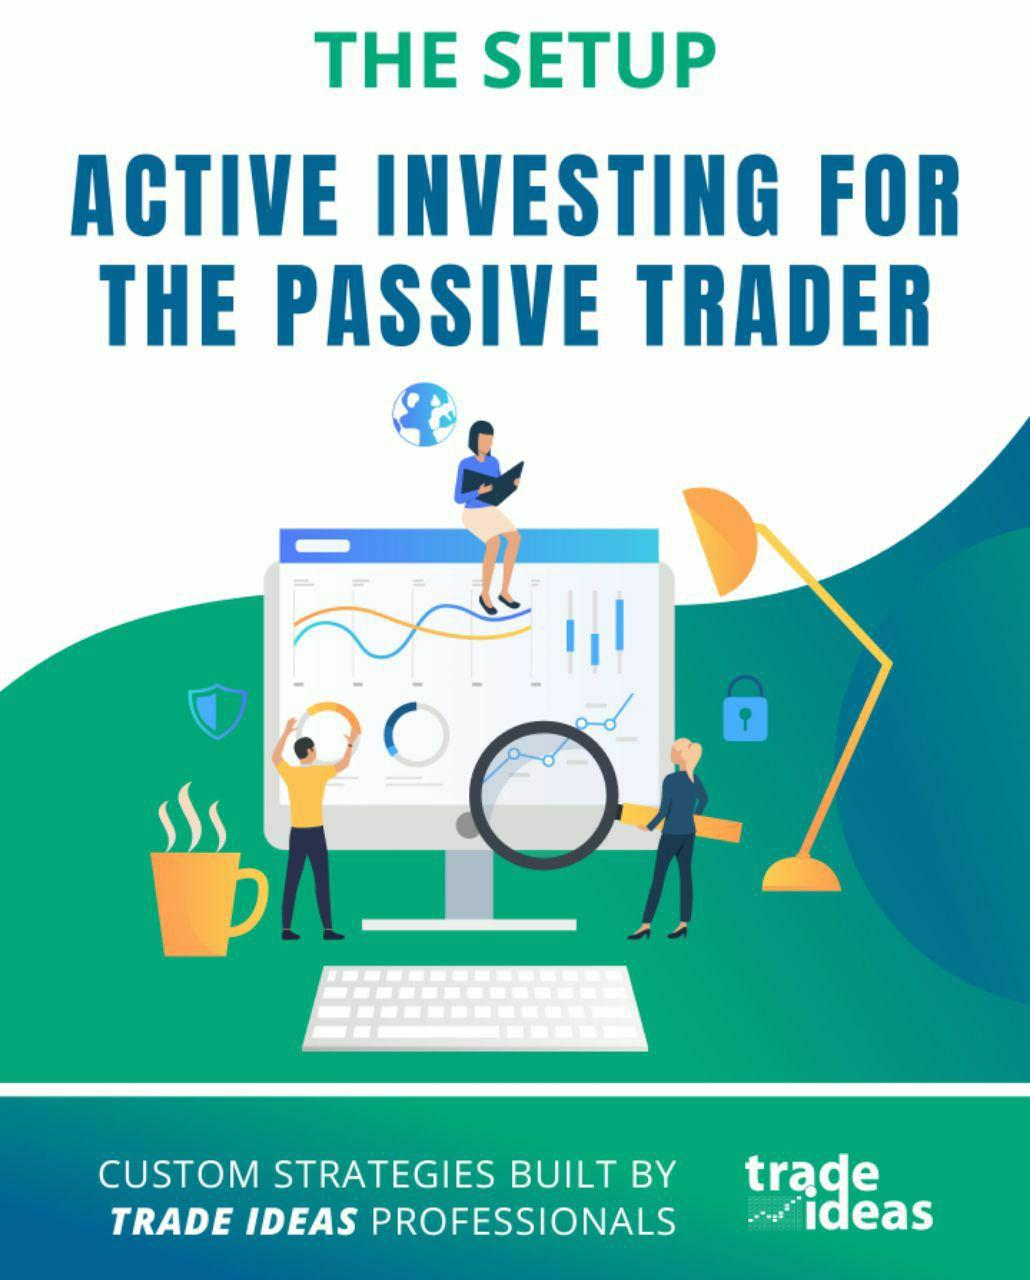 ACTIVE INVESTING FOR THE PASSIVE TRADER